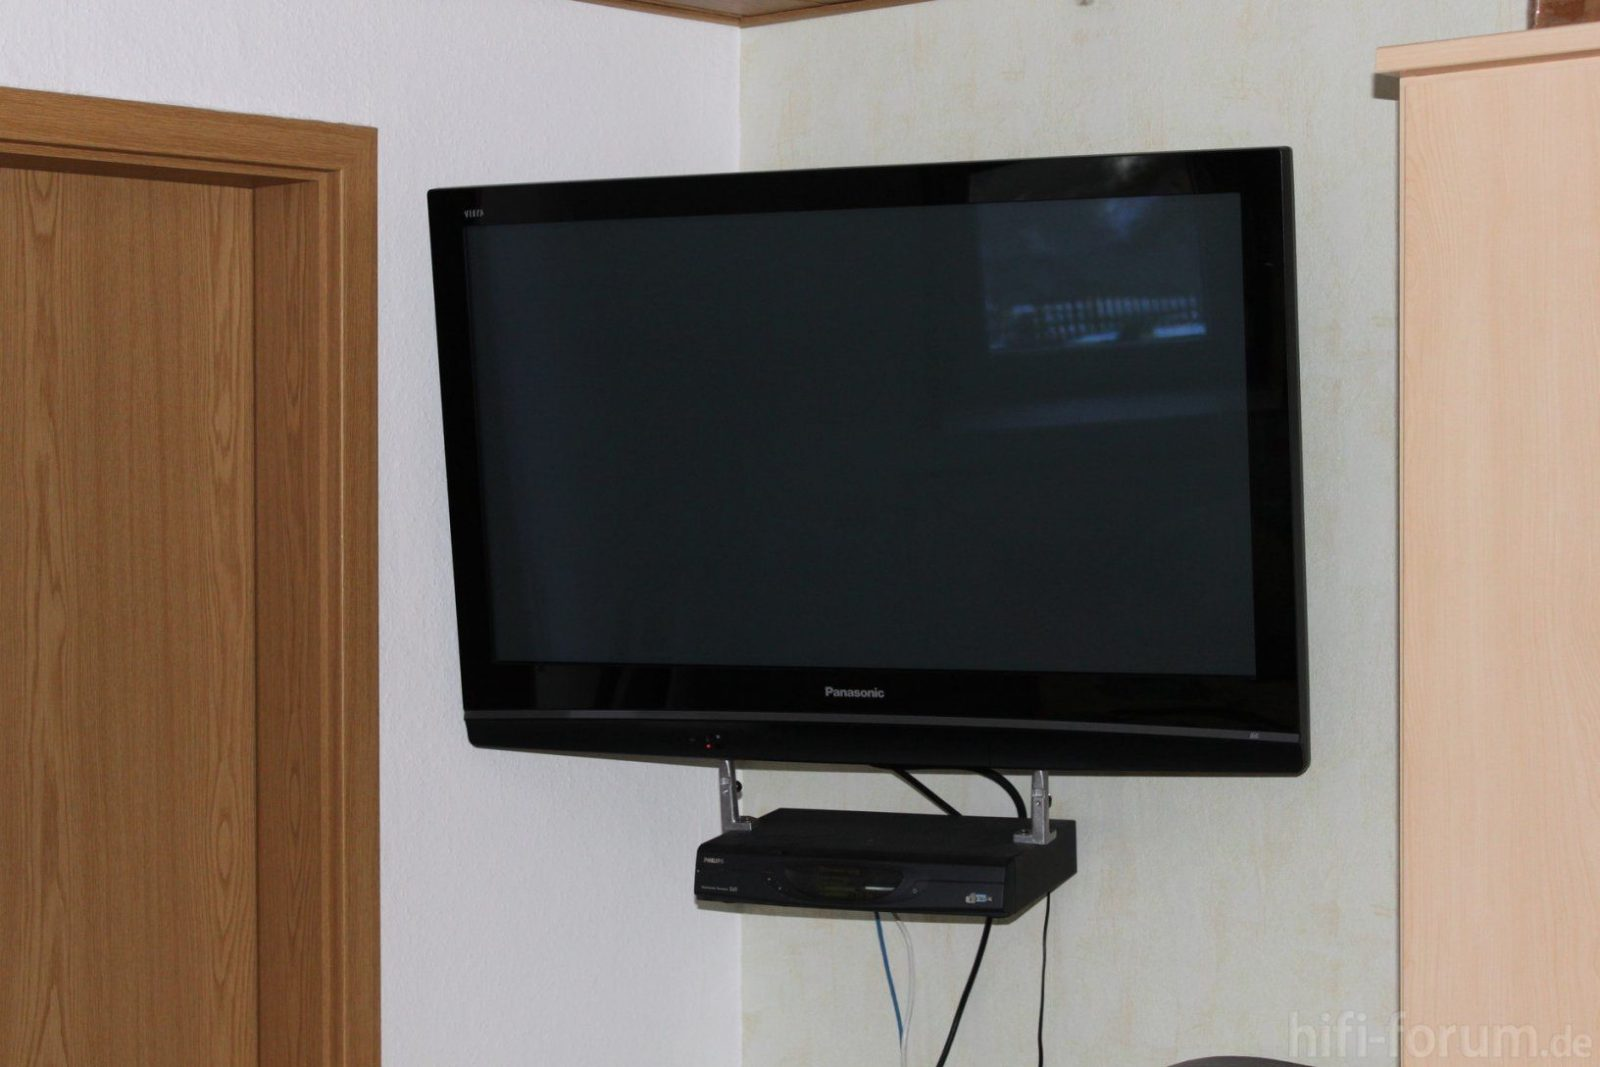 Kabel Verstecken Tv Go From A Hot Mess To Clean How